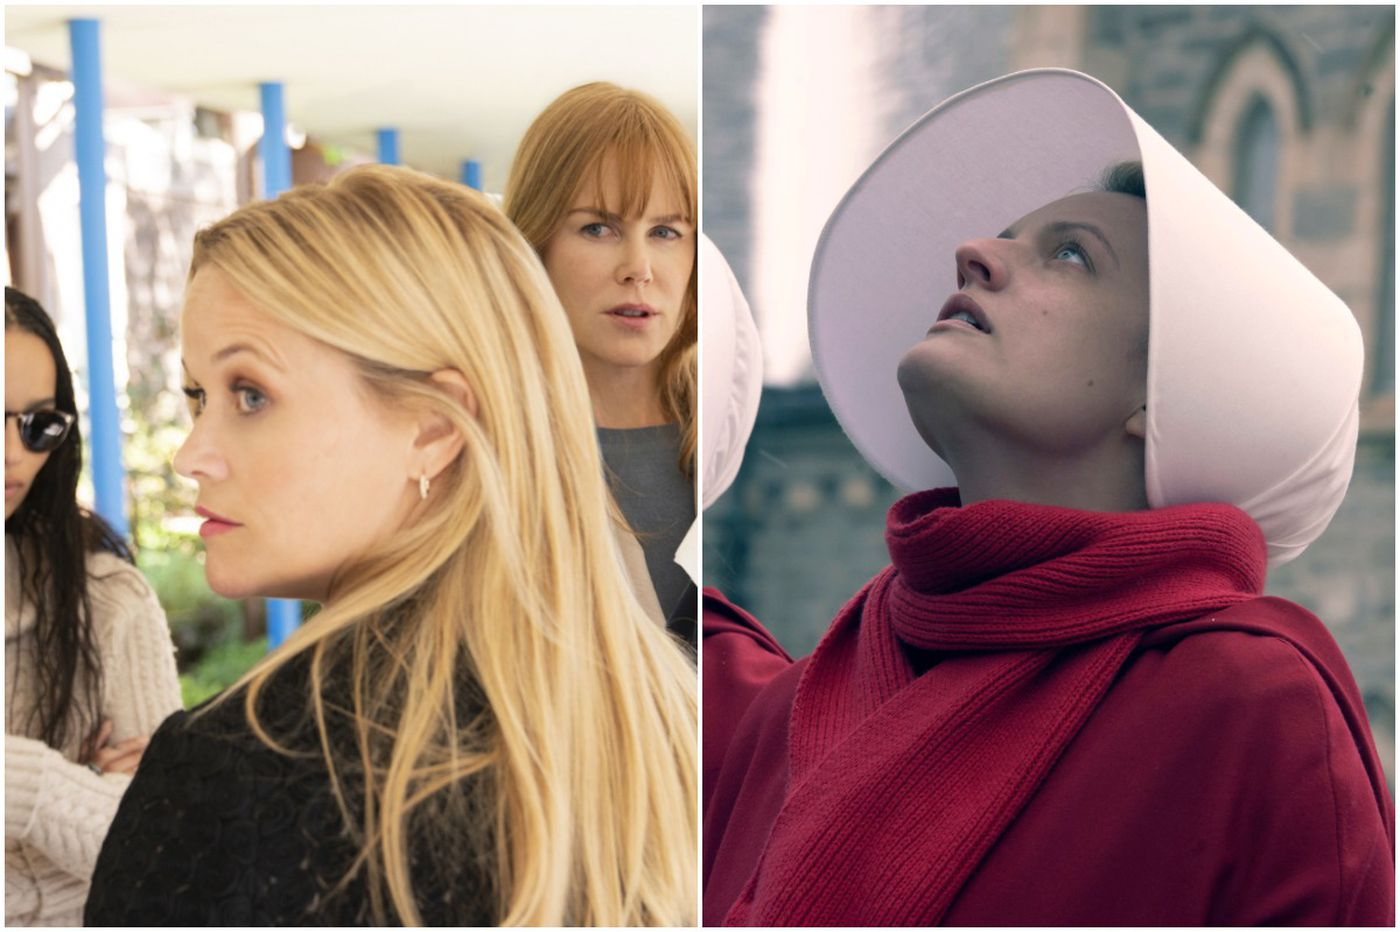 'Big Little Lies' & 'A Handmaid's Tale': Still things to see here?